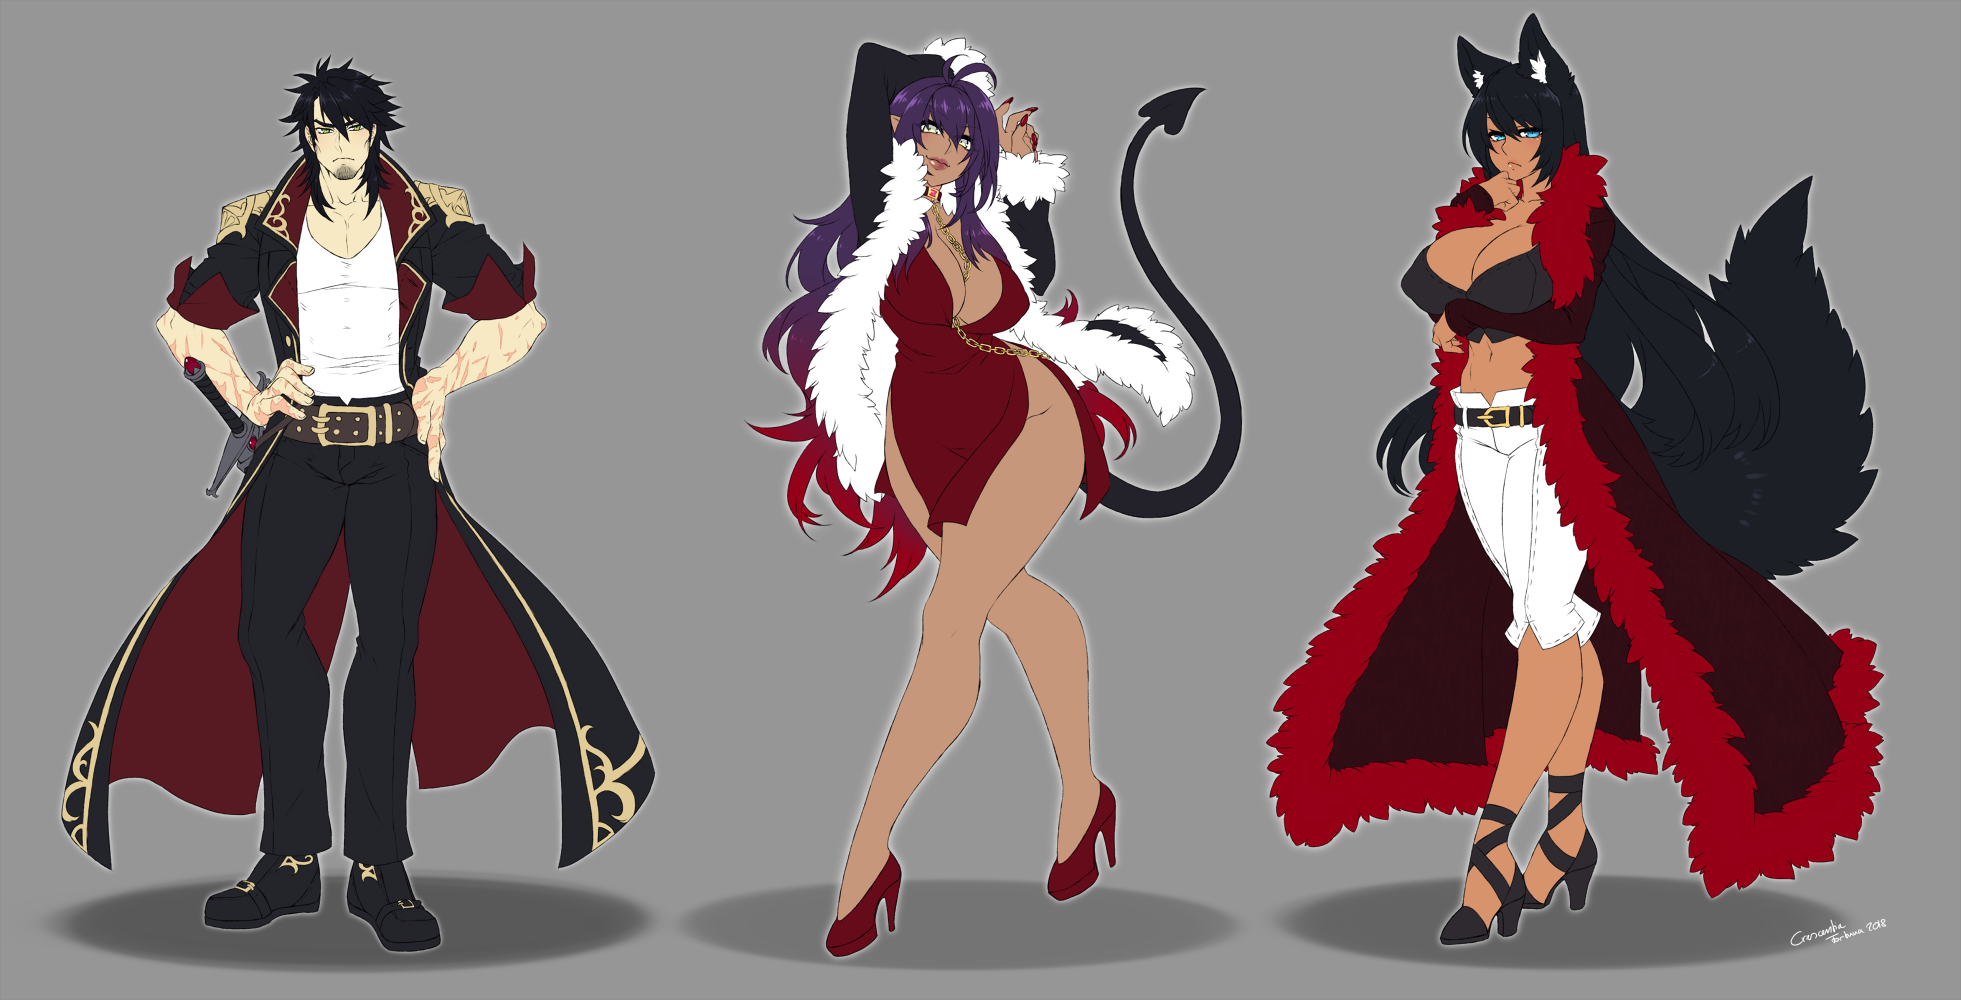 Zhuan character design commissions 2